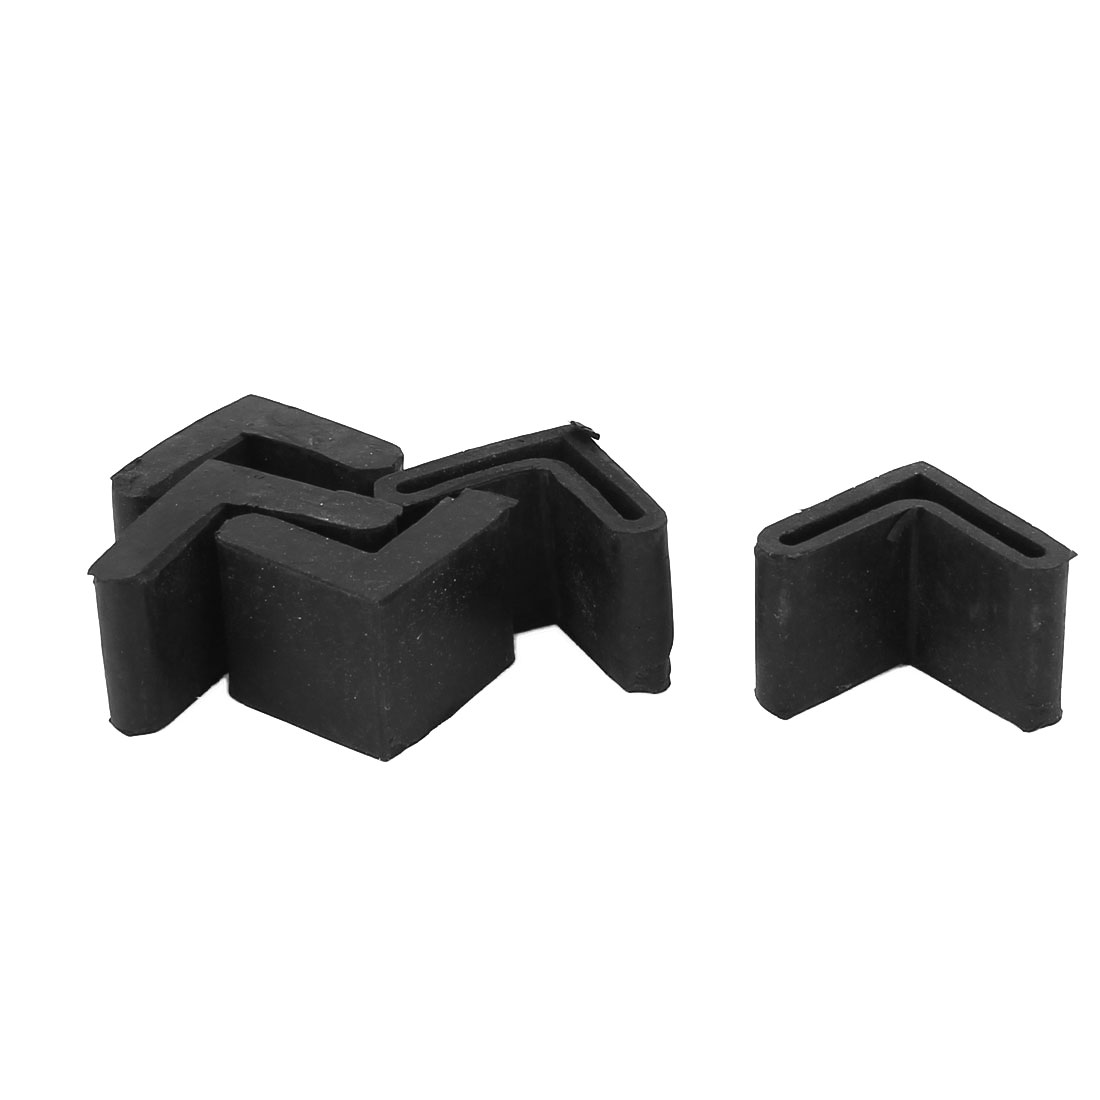 Rubber Triangle Furniture Leg Foot Protection Pad 25mmx25mm 5Pcs Black